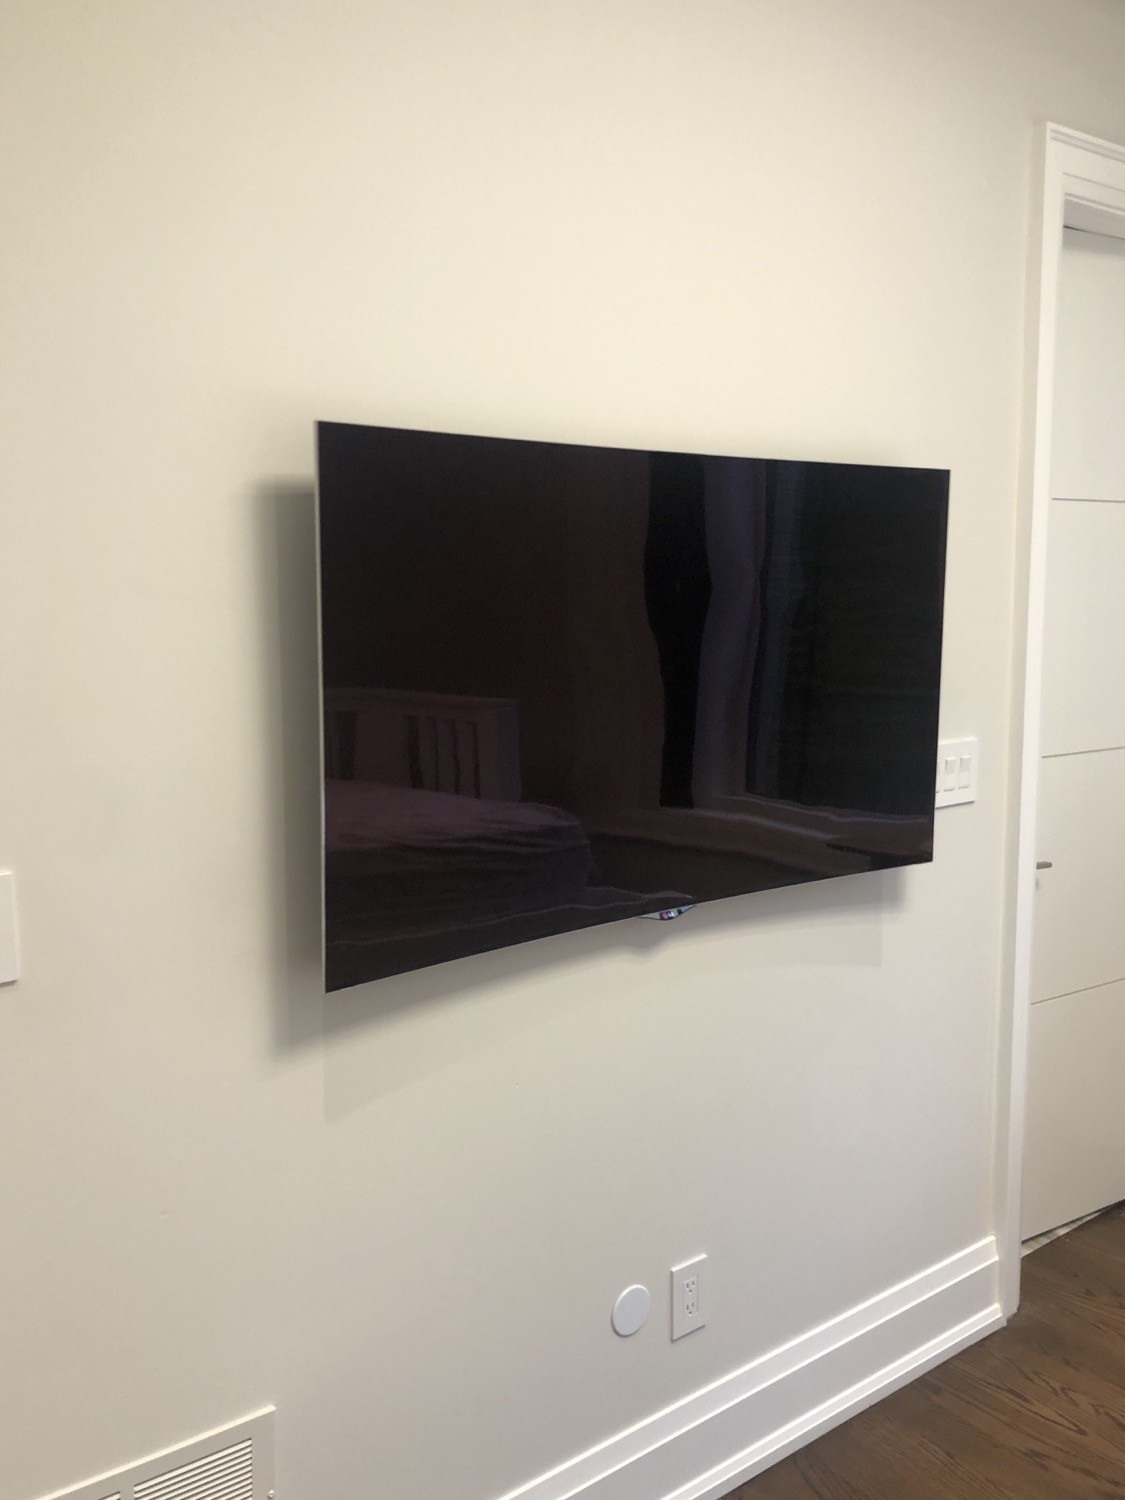 Wall mounting 4K TV